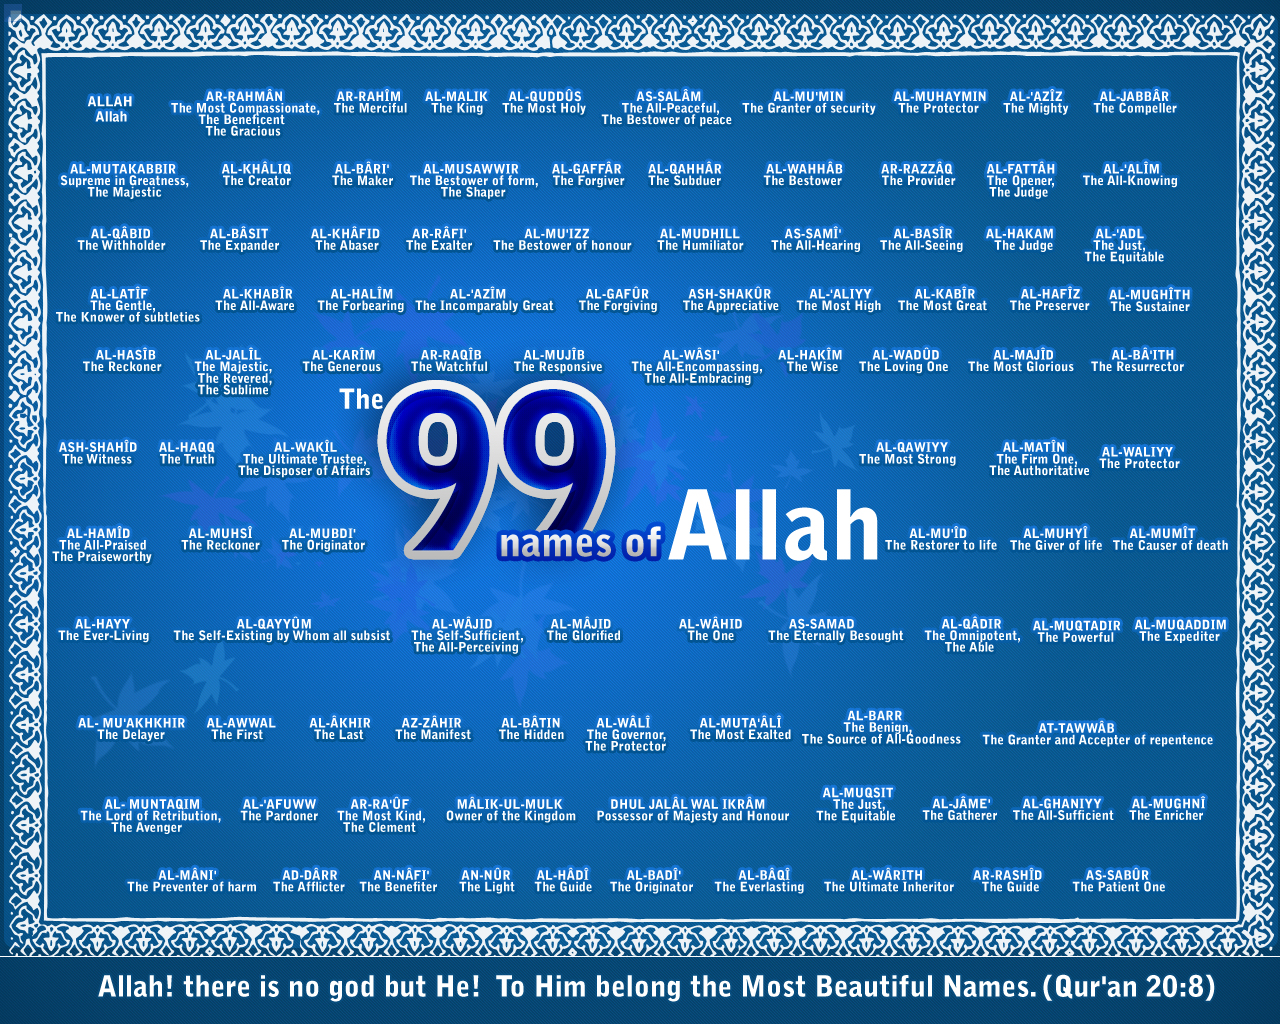 THE LIST OF 99 NAMES ALLAH